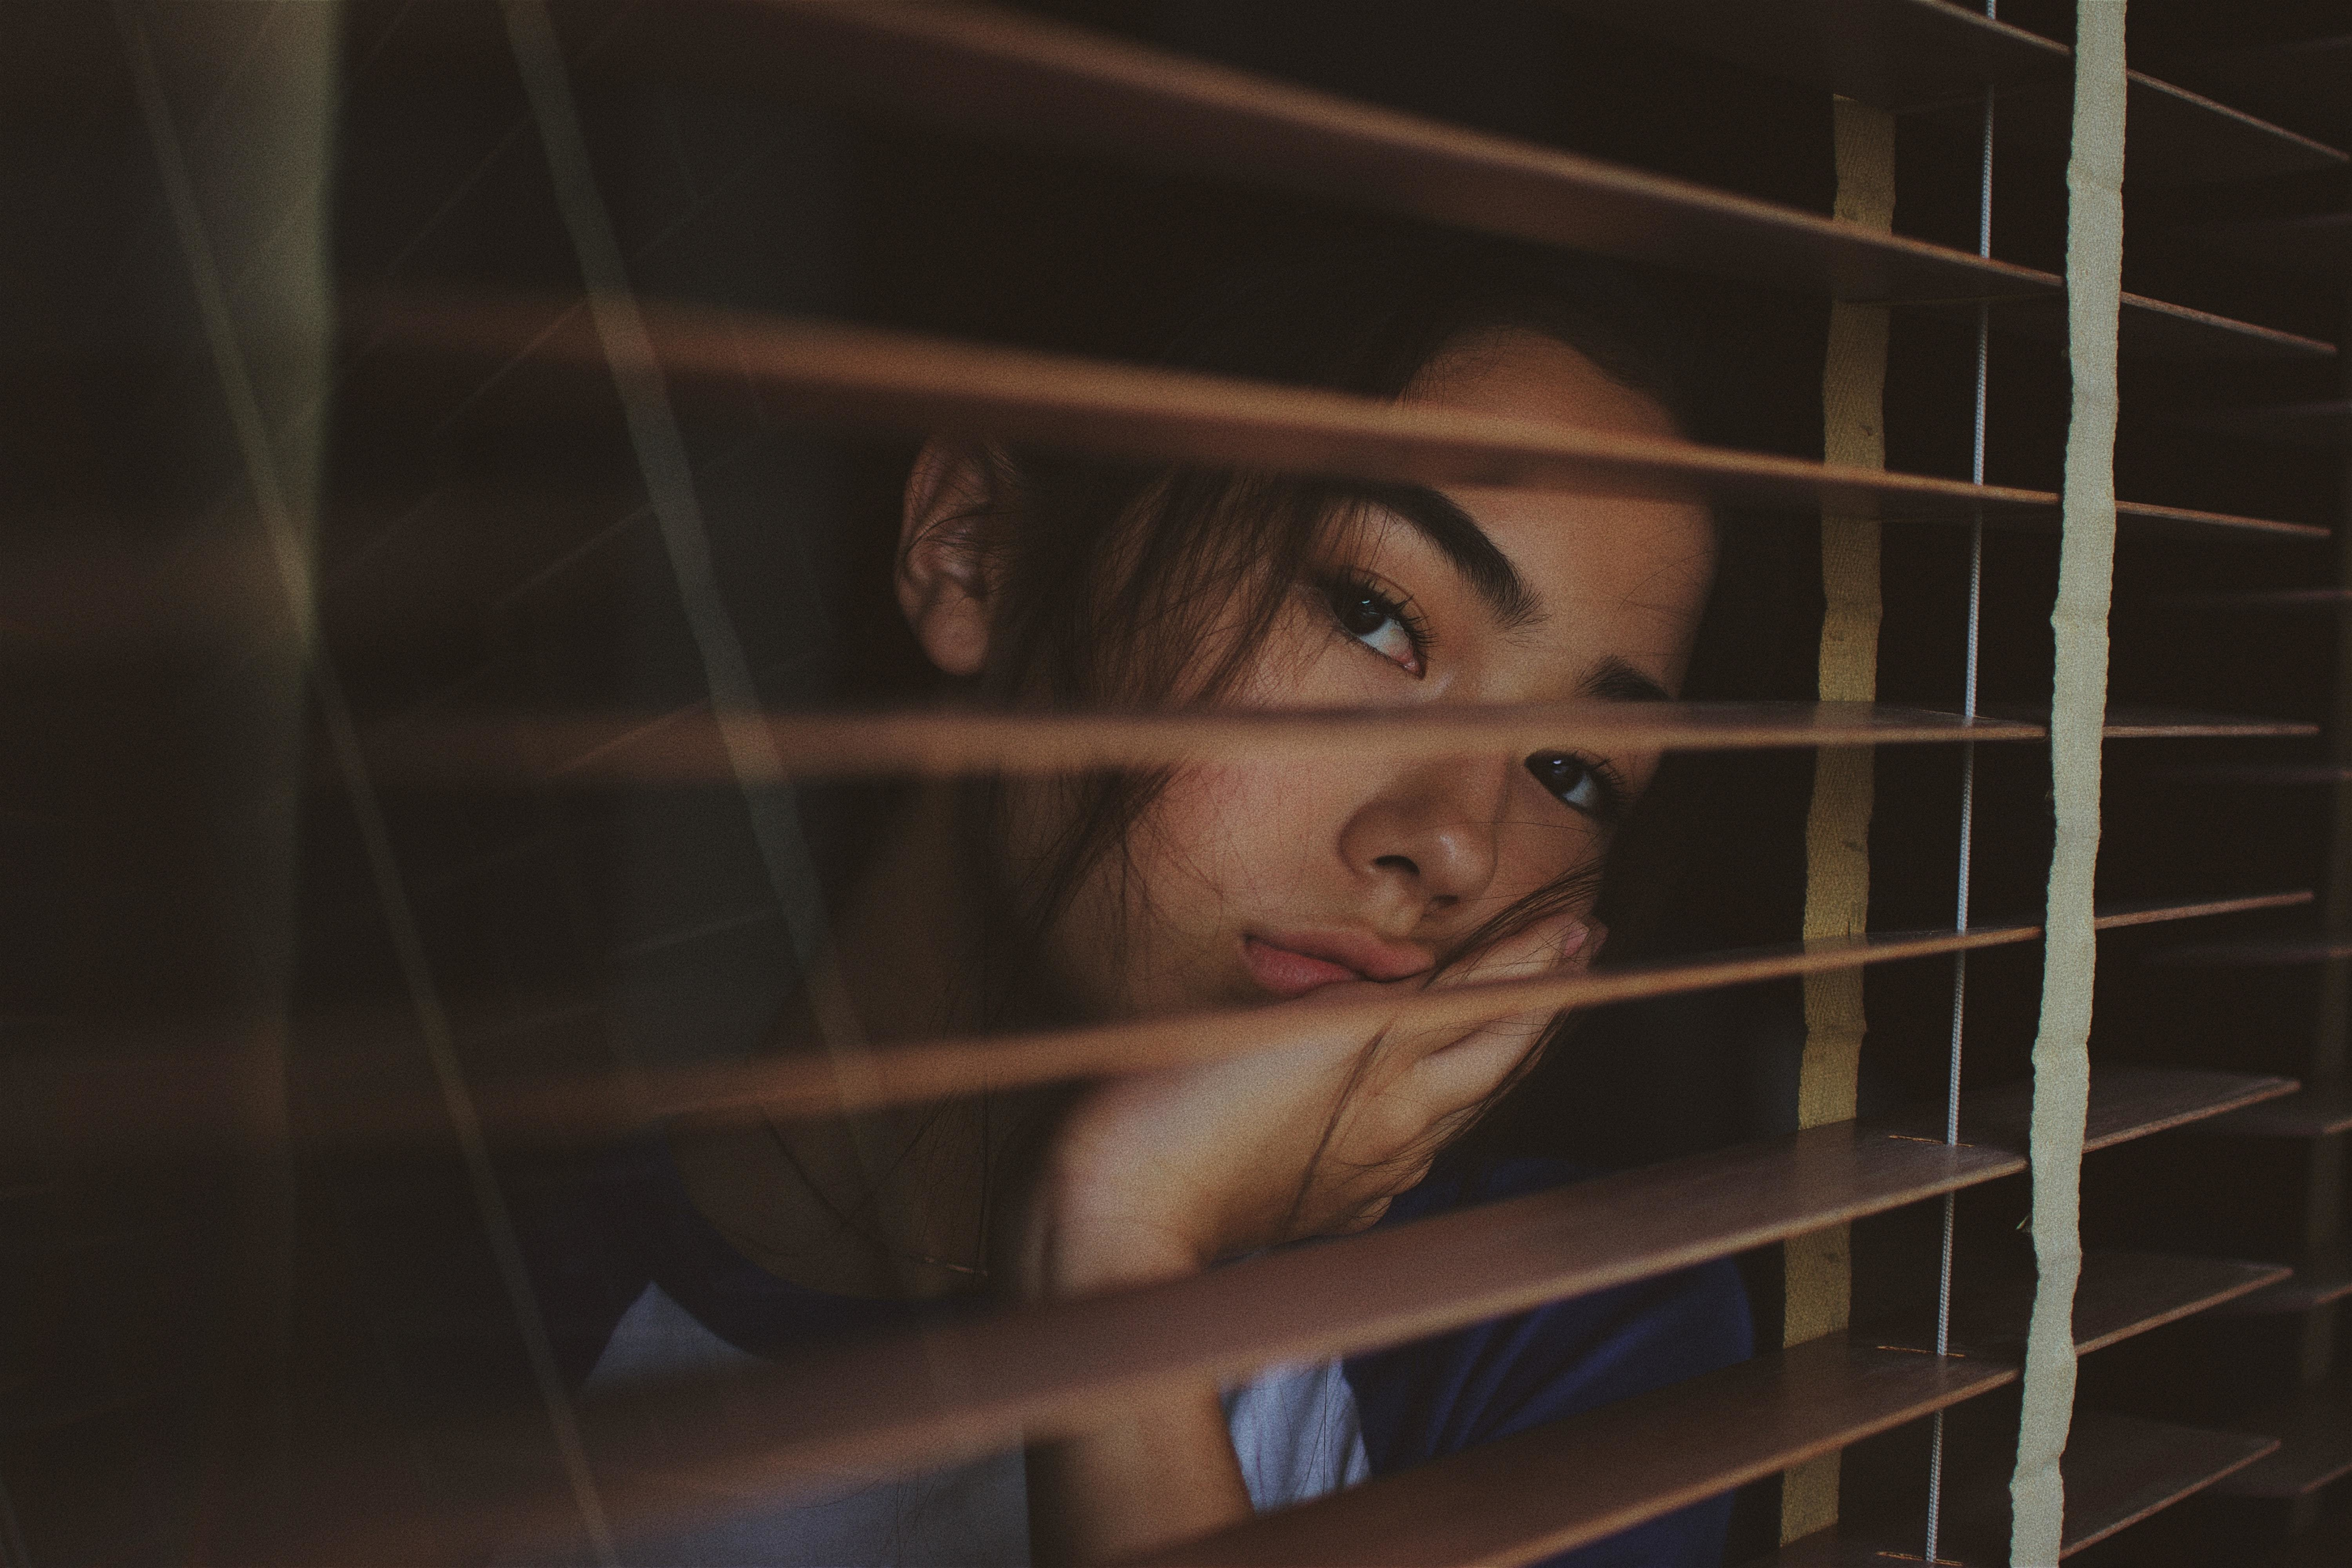 sad girl looking out of window showing how COVID-19 pandemic affects mental health